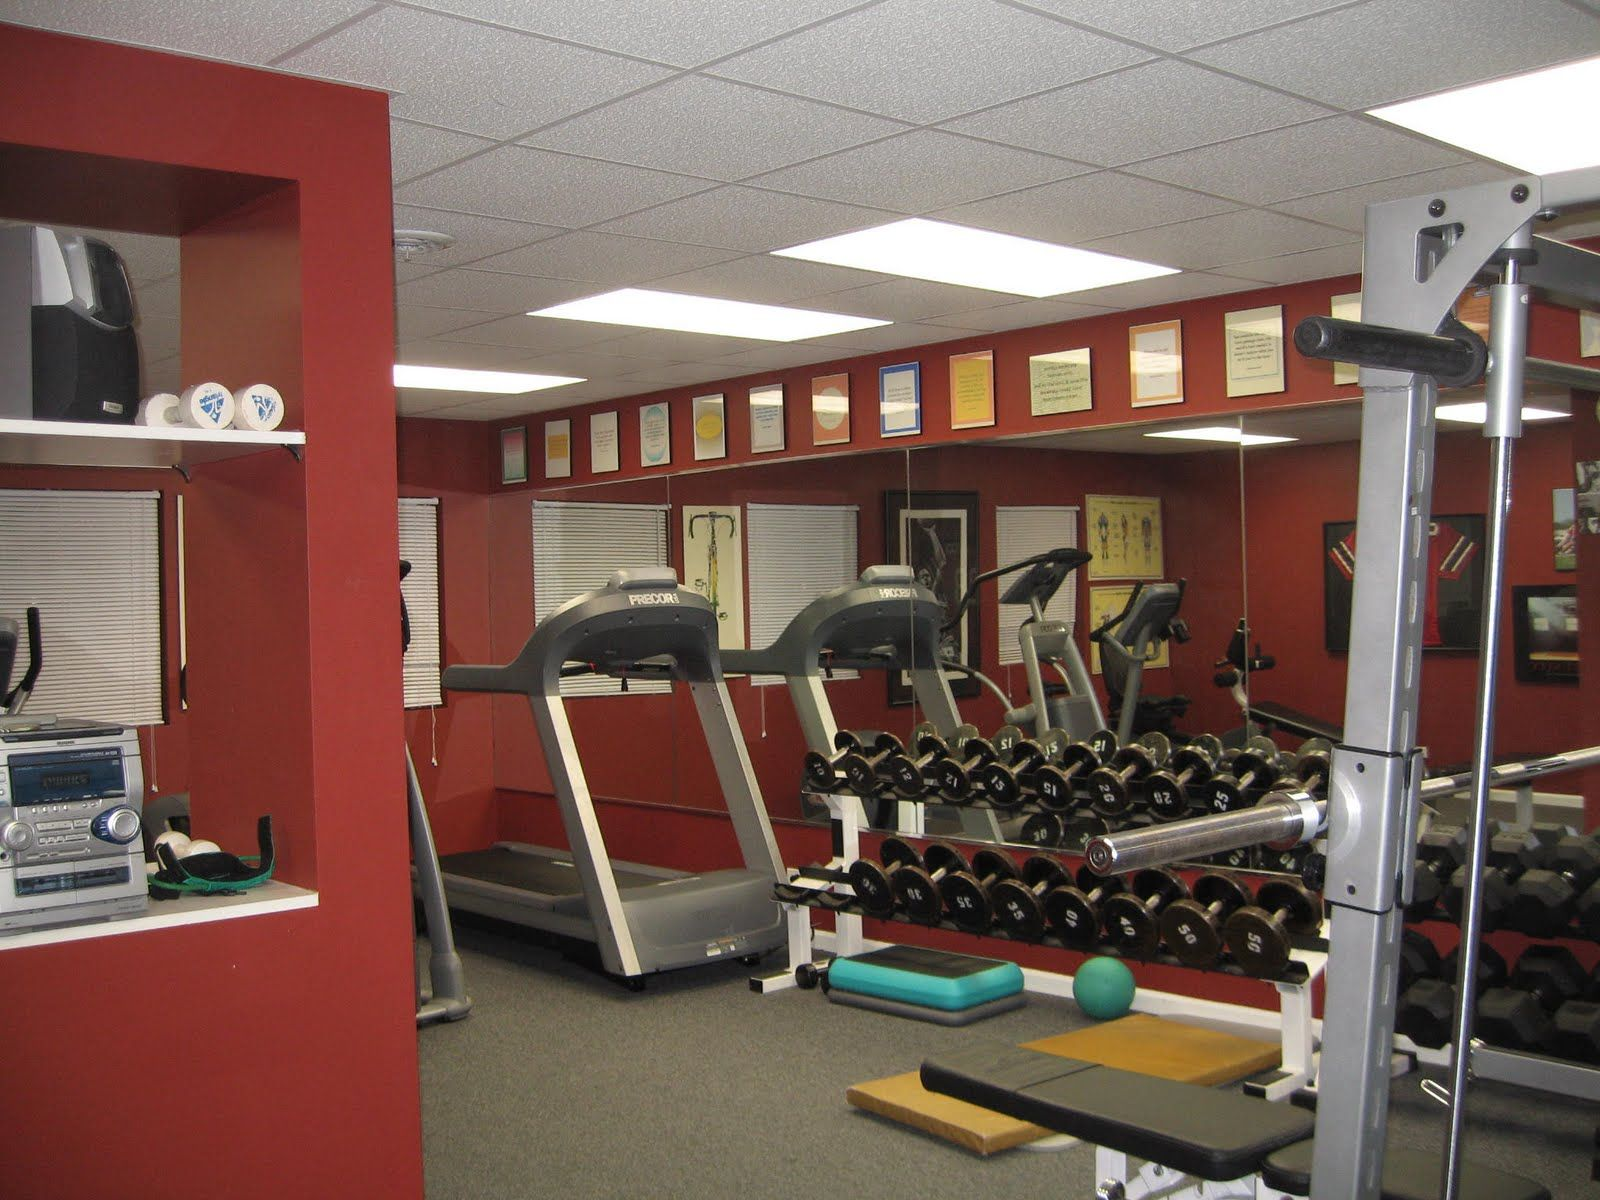 Images about gym s design on pinterest home gyms a gym and search - Home Gym Rooms Google Search